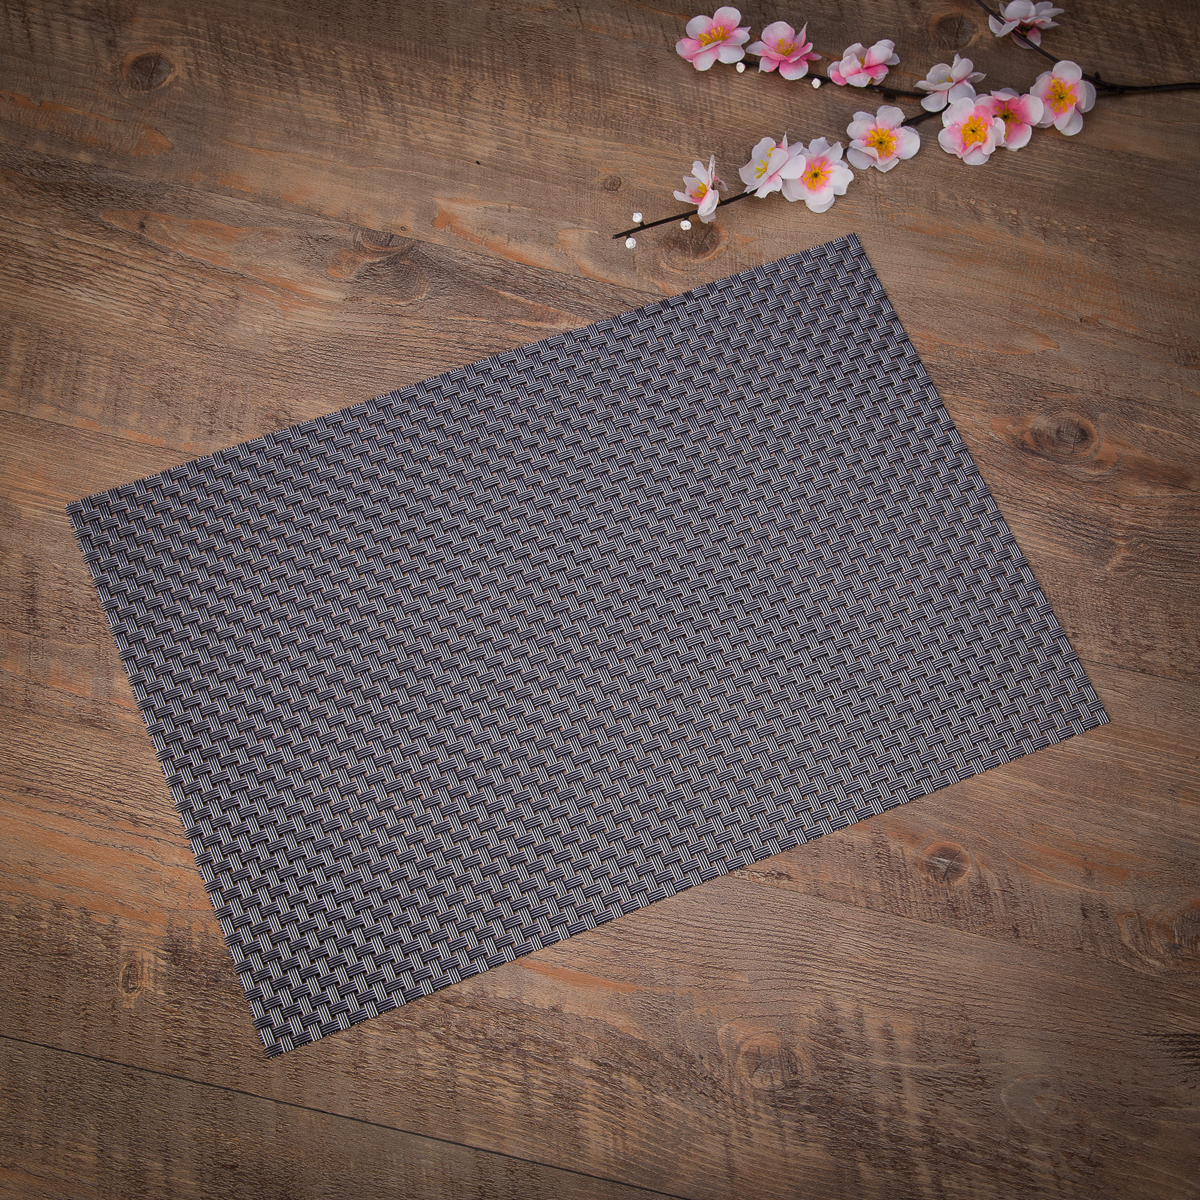 Heat Insulation Stain Resistant Woven Vinyl Placemats 18